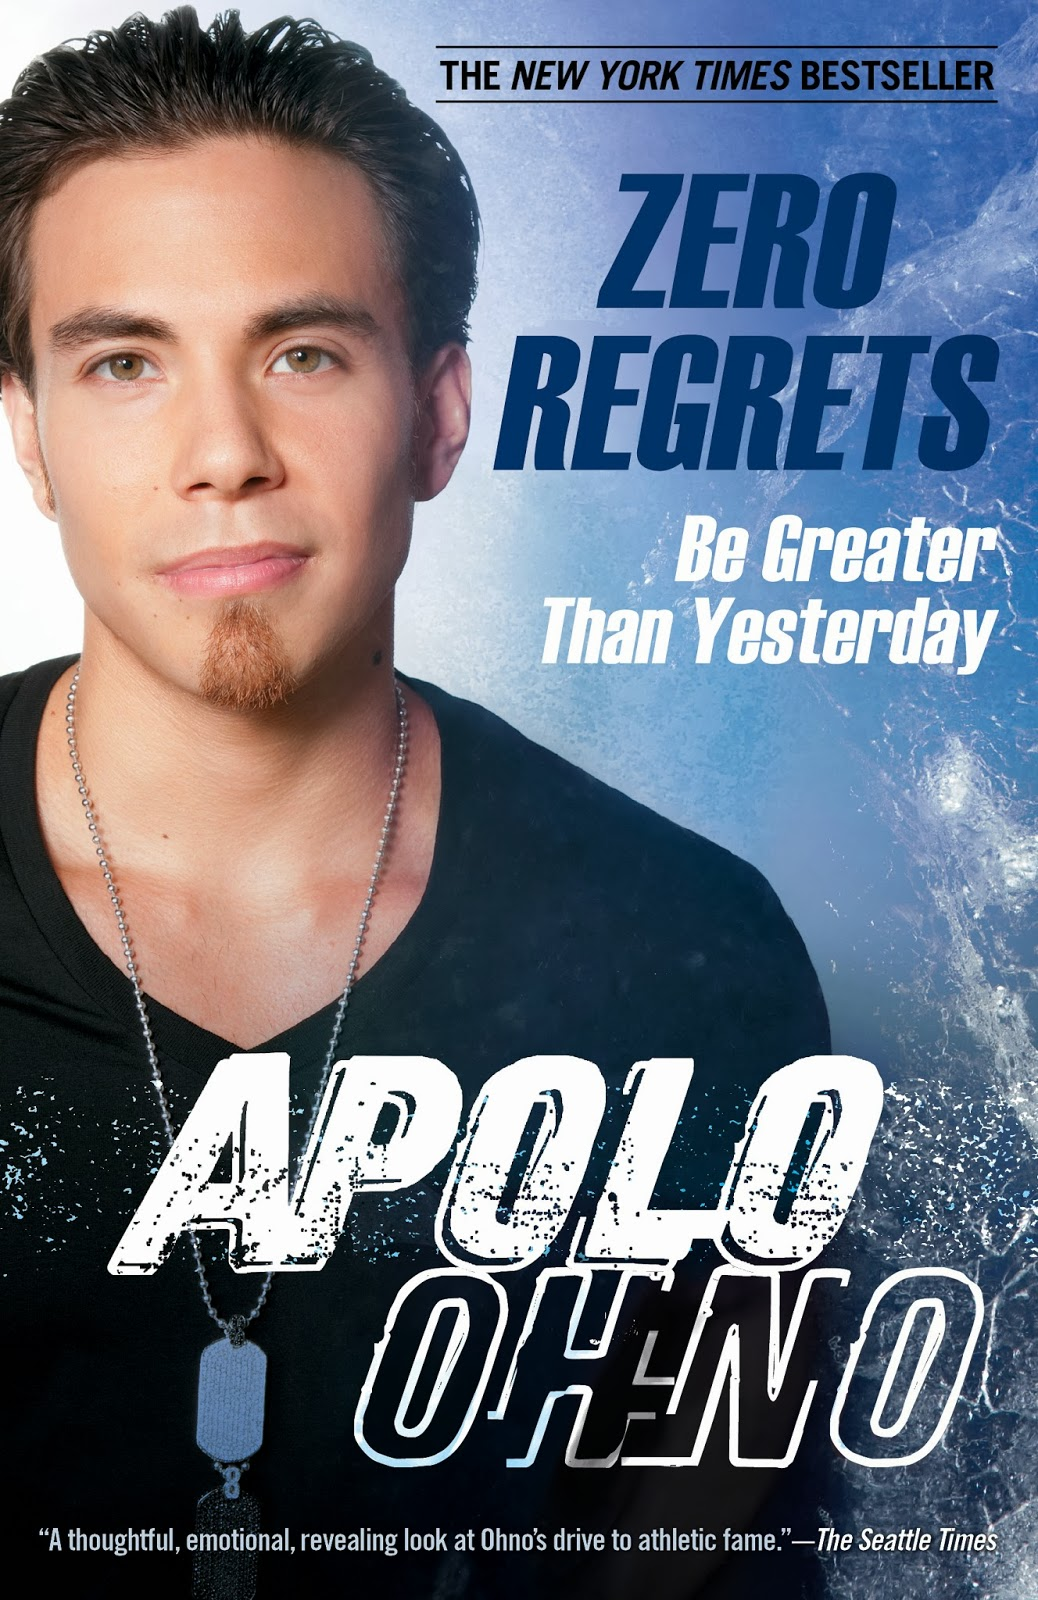 http://discover.halifaxpubliclibraries.ca/?q=title:zero%20regrets%20be%20greater%20than%20yesterday